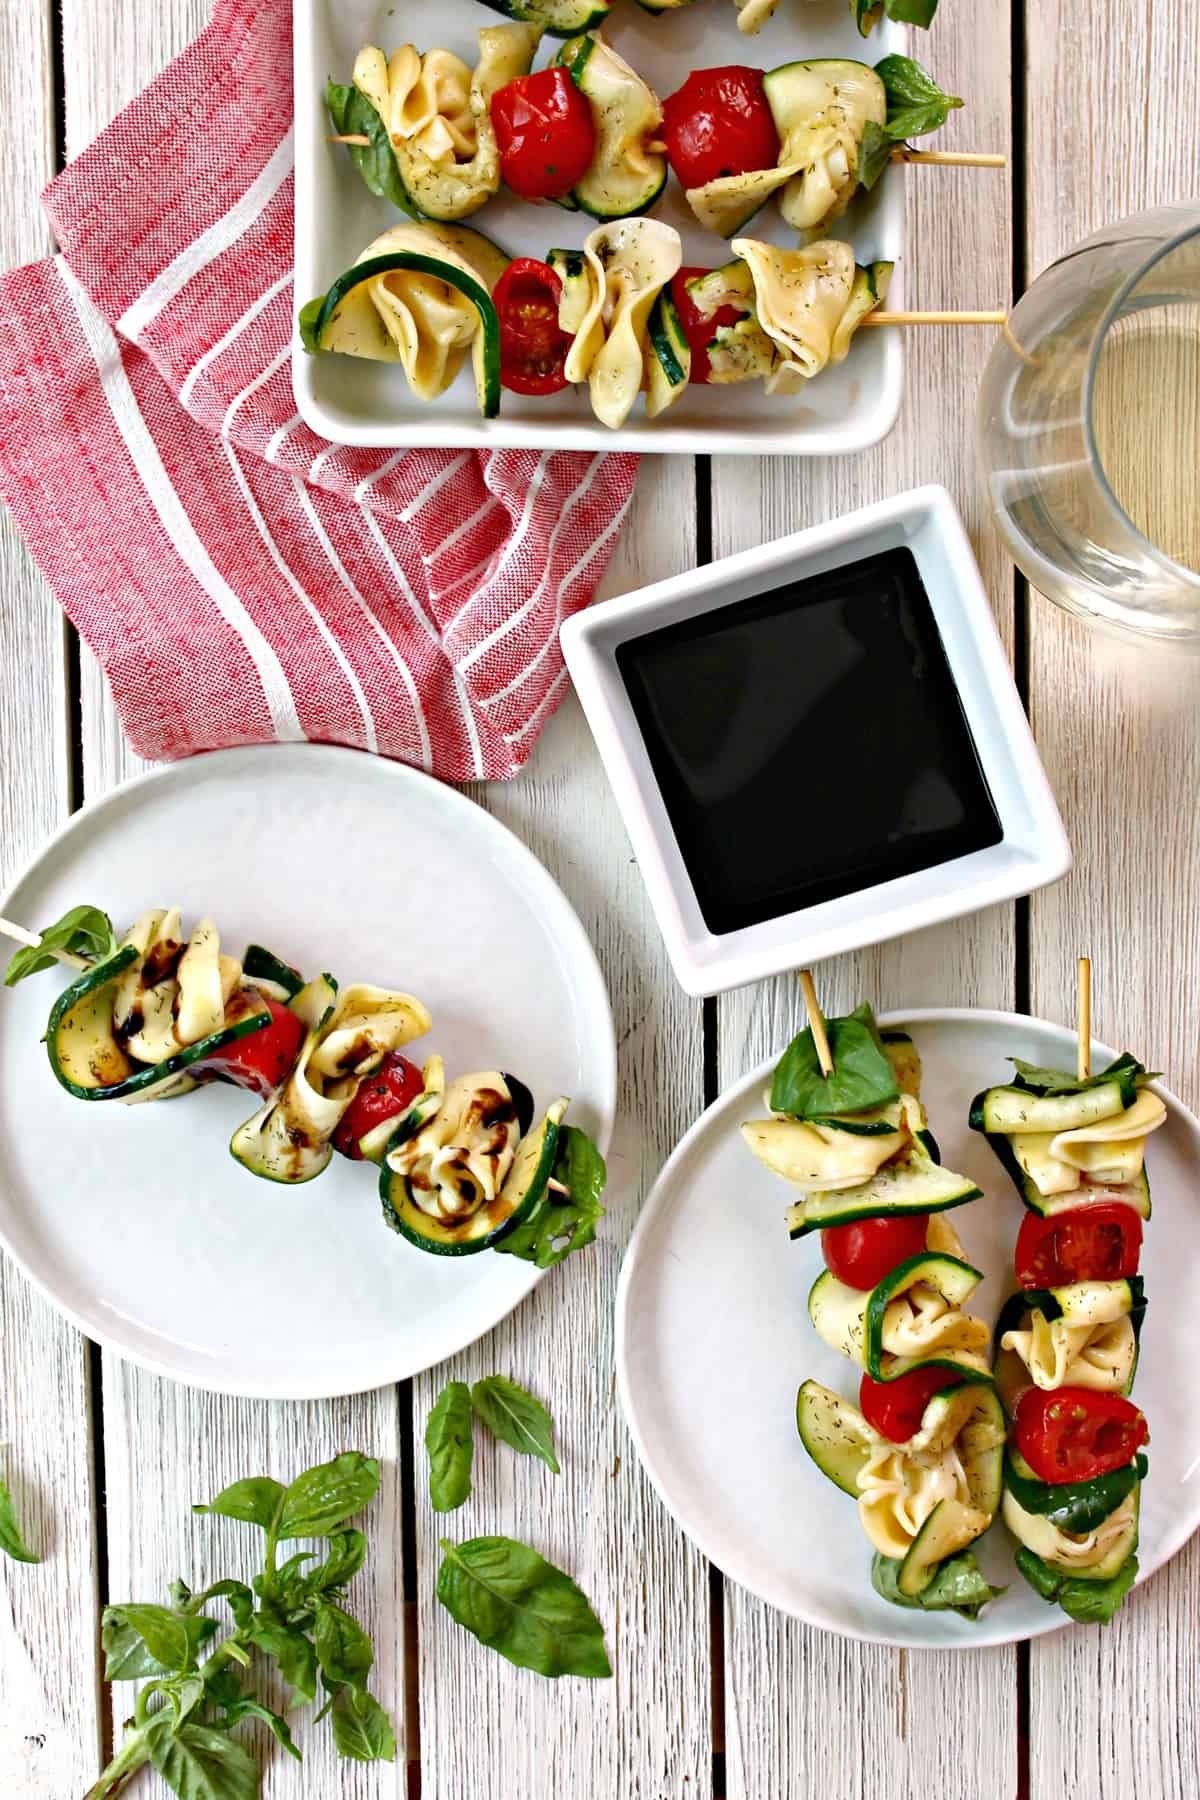 Zucchini & Tortellini Skewers are made with fresh cooked tortellini, zucchini, basil, and fresh cherry tomatoes and served with a balsamic dip